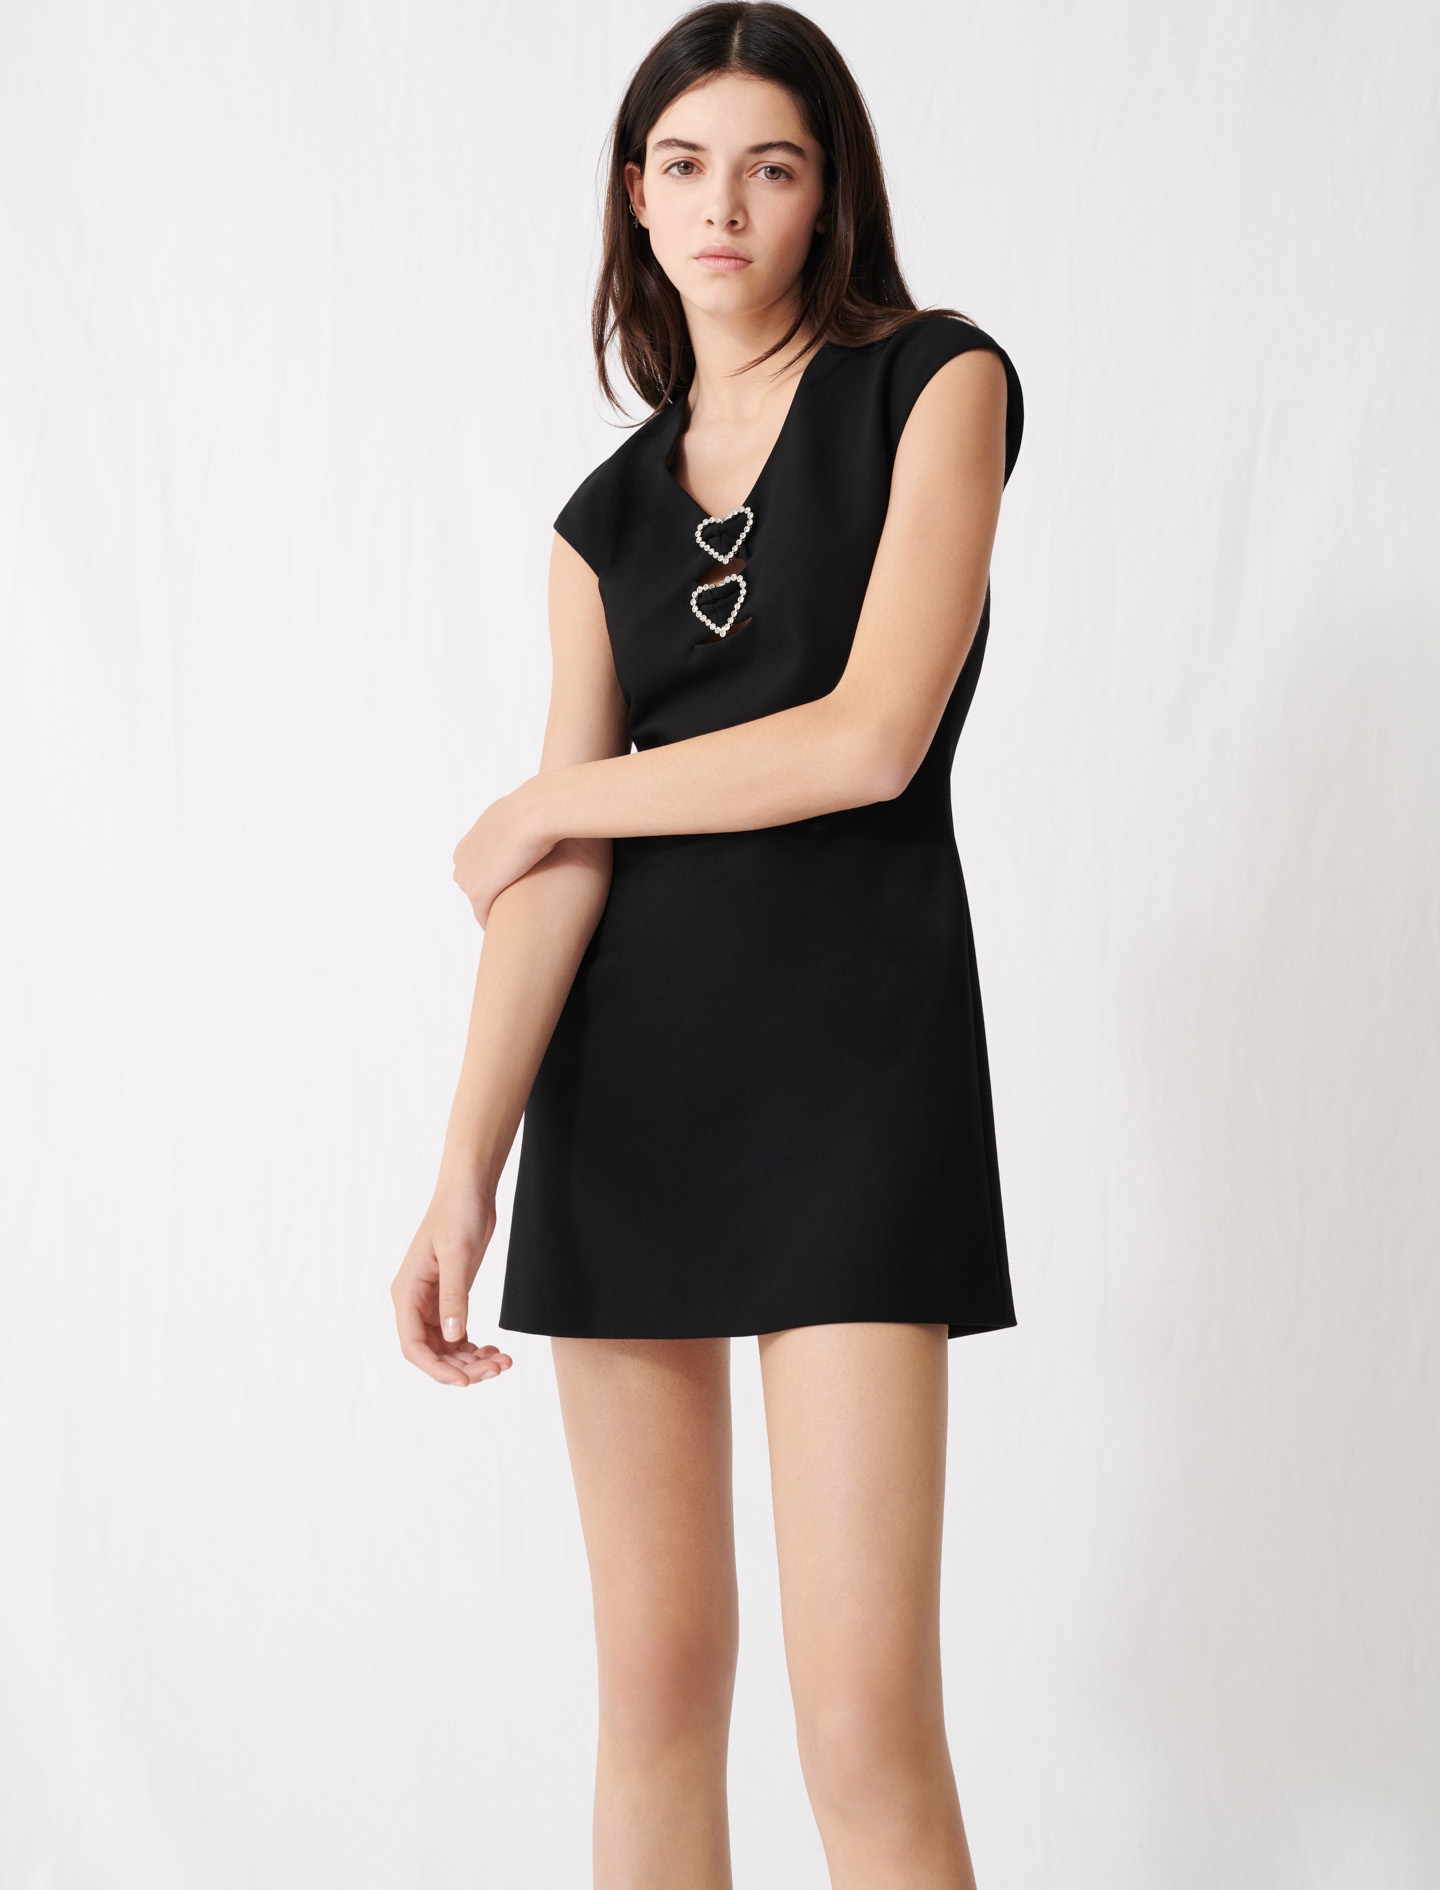 Dress with diamanté and hearts - Black